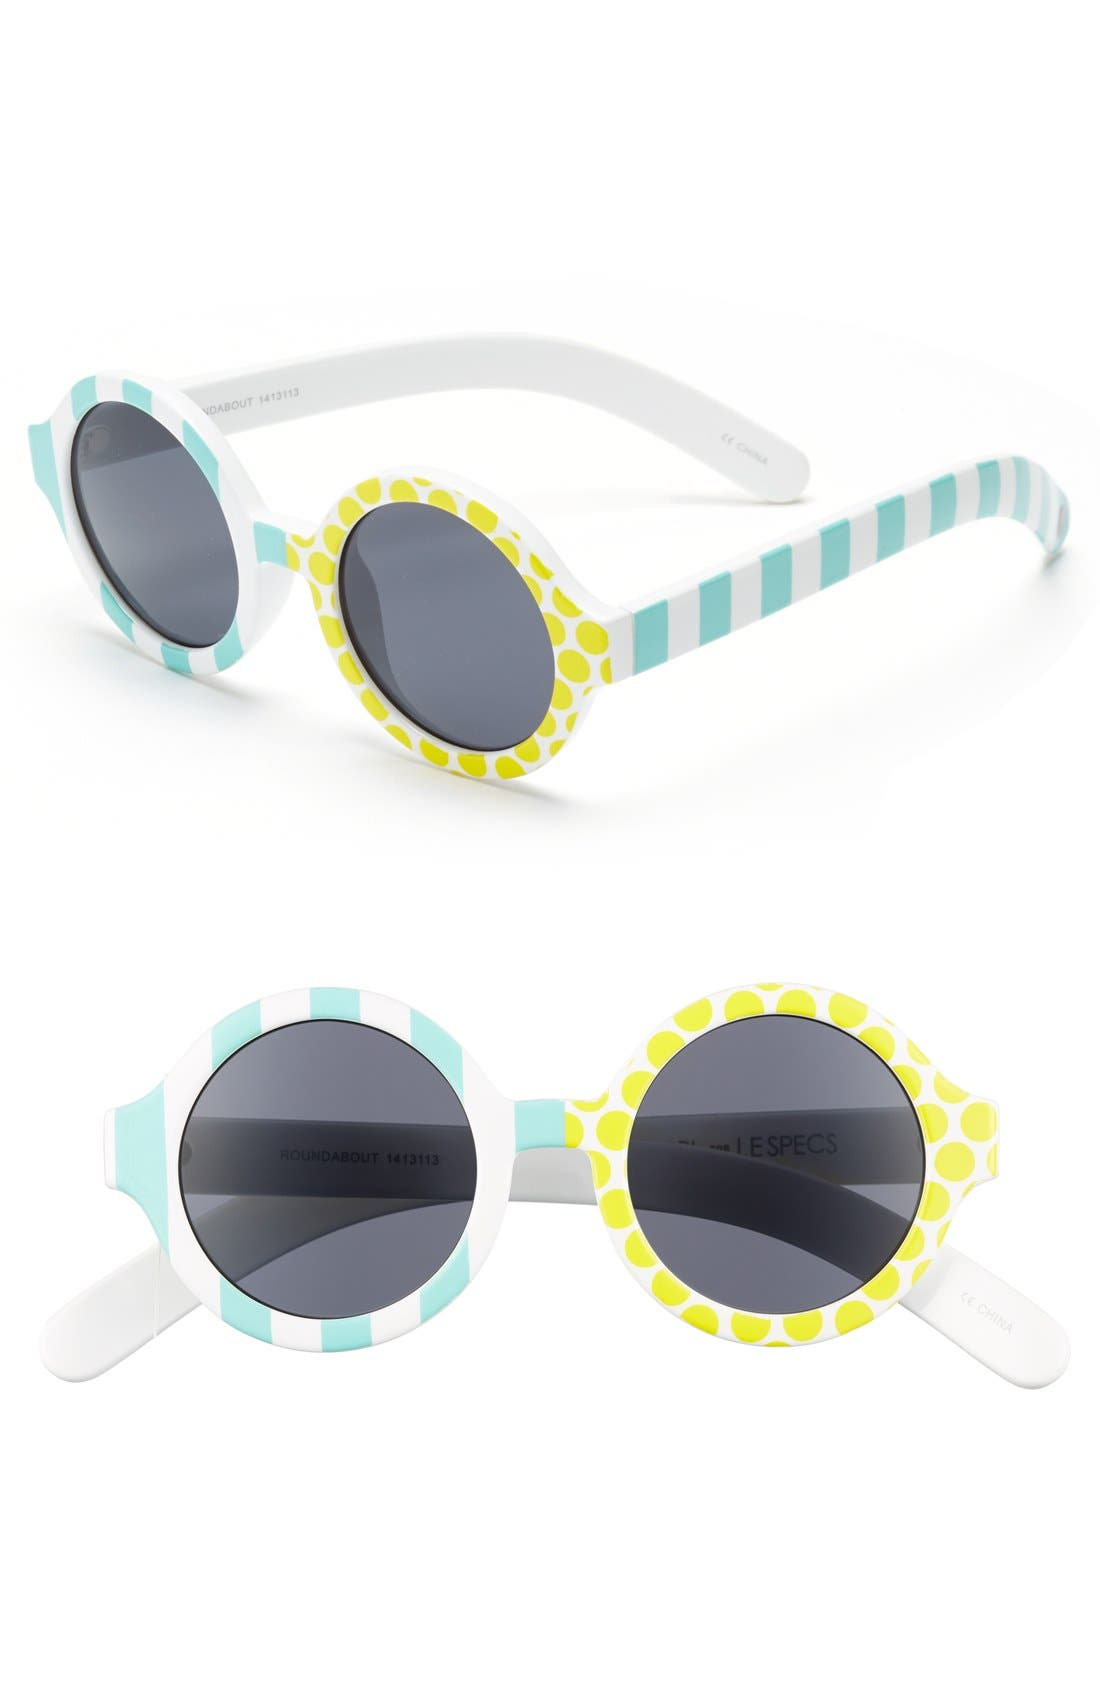 Main Image - Craig and Karl x Le Specs 'Roundabout' 45mm Sunglasses